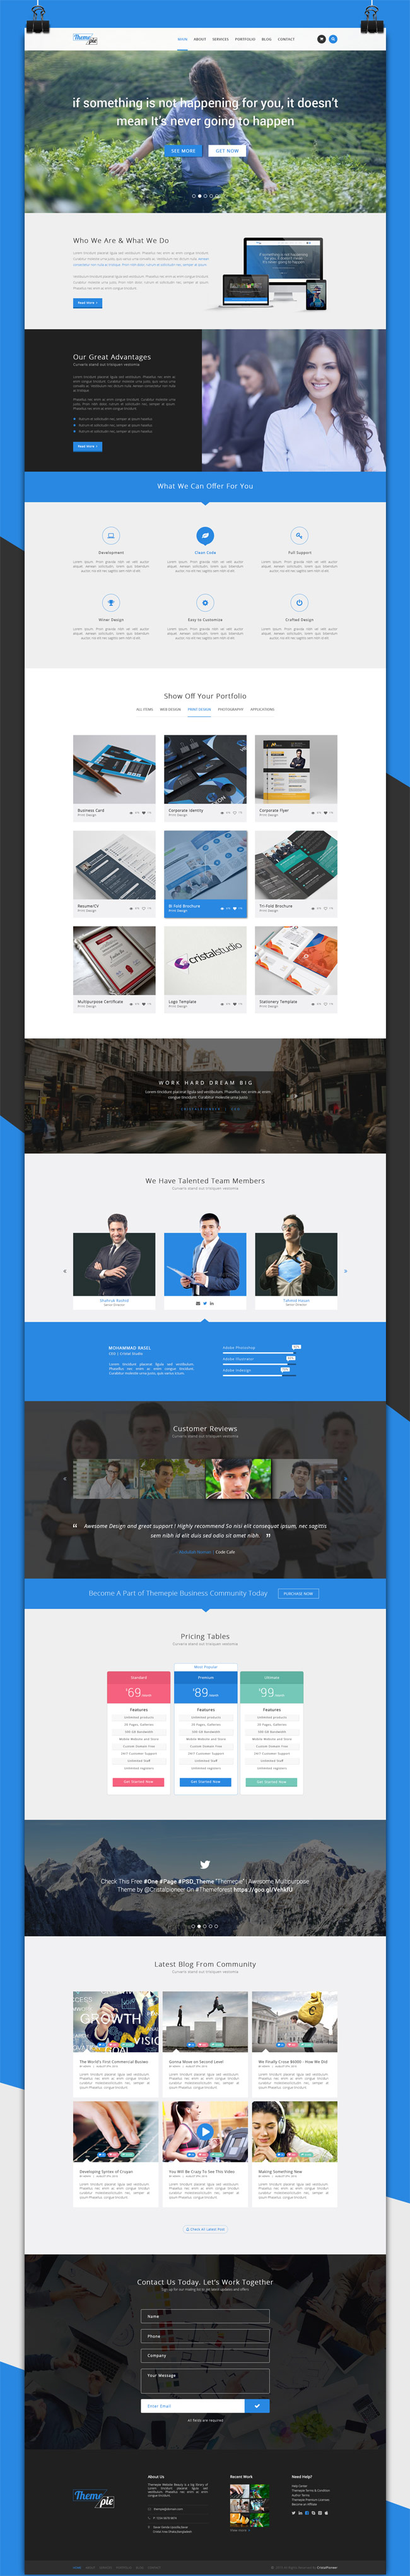 Themepie – Free One Page PSD Web Template